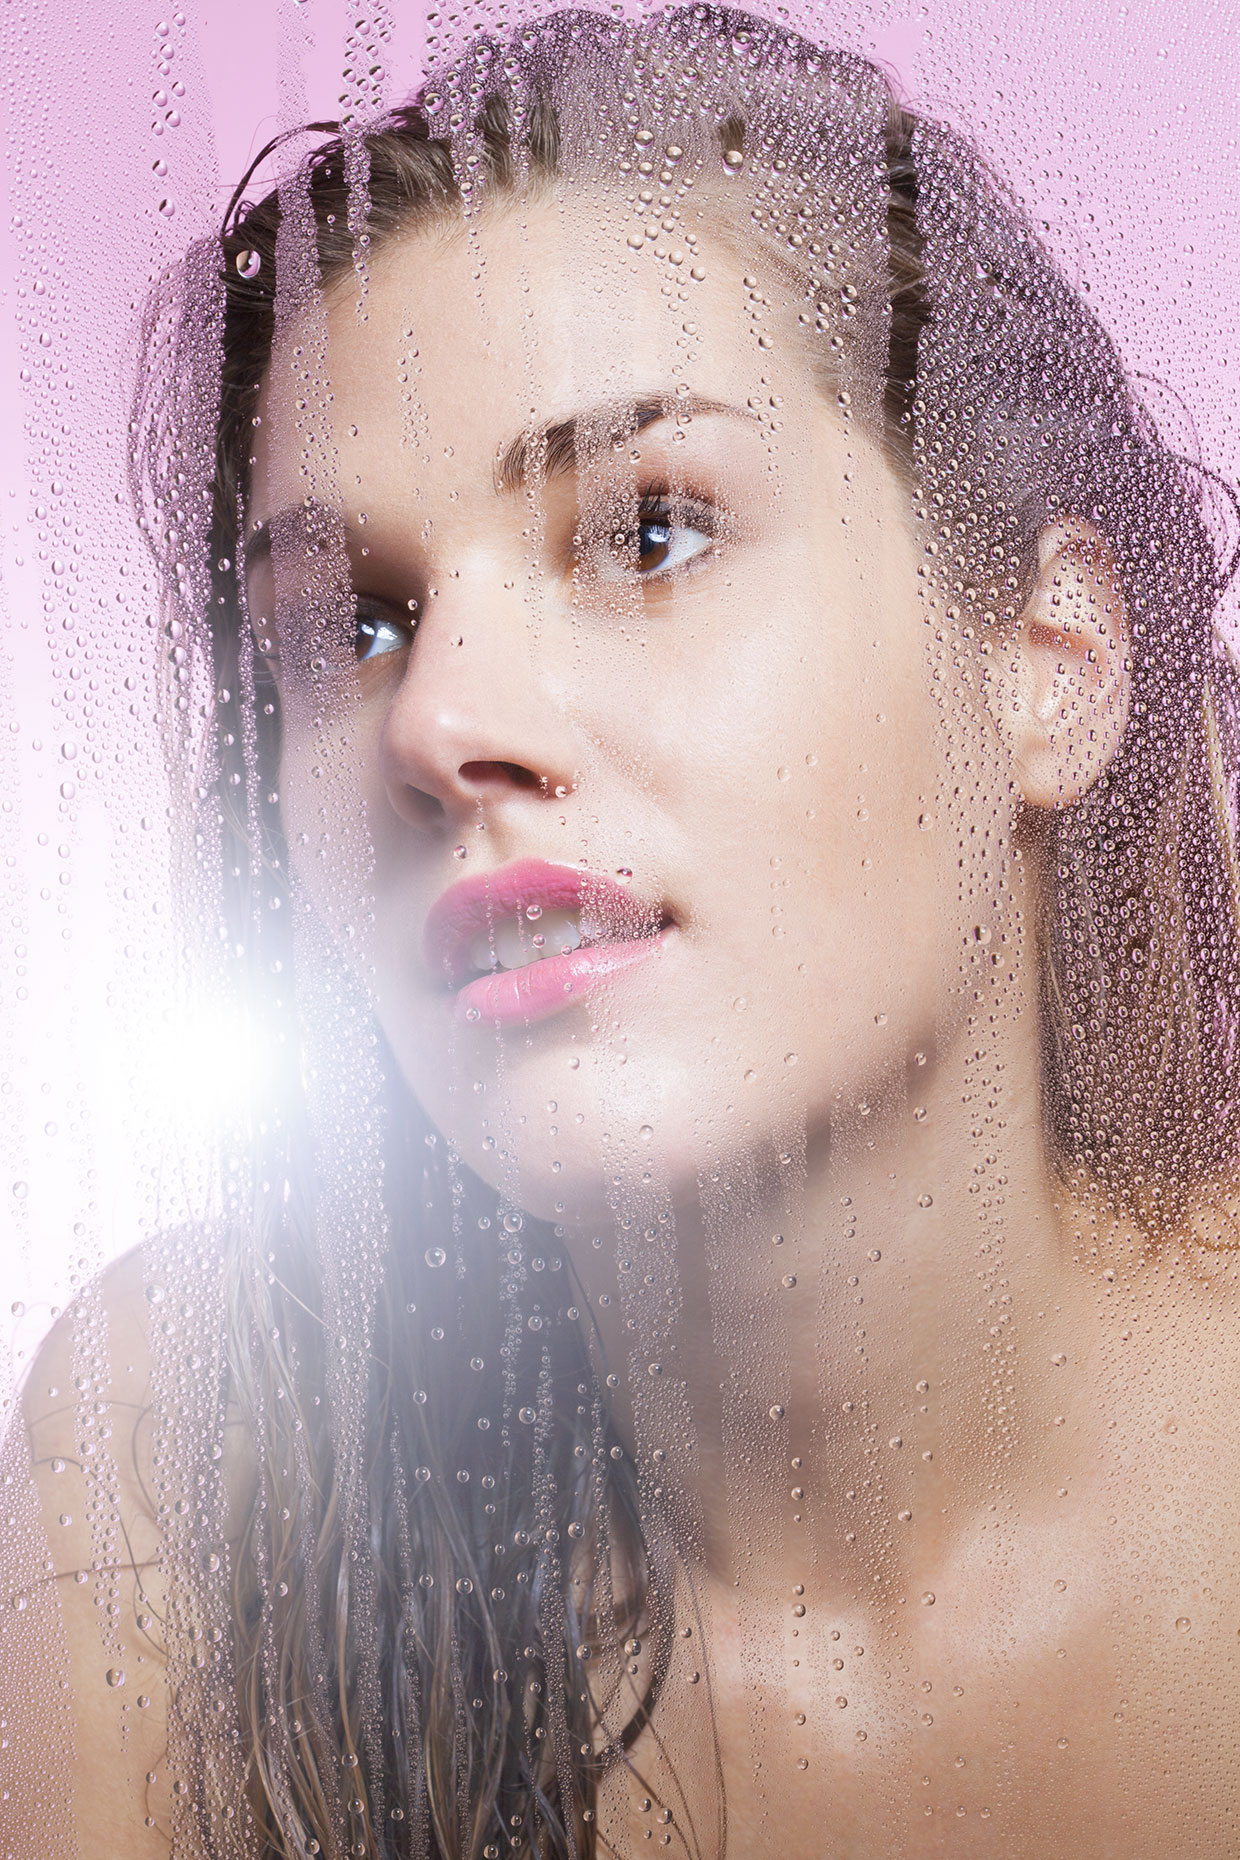 Young woman behind glass with water droplets.